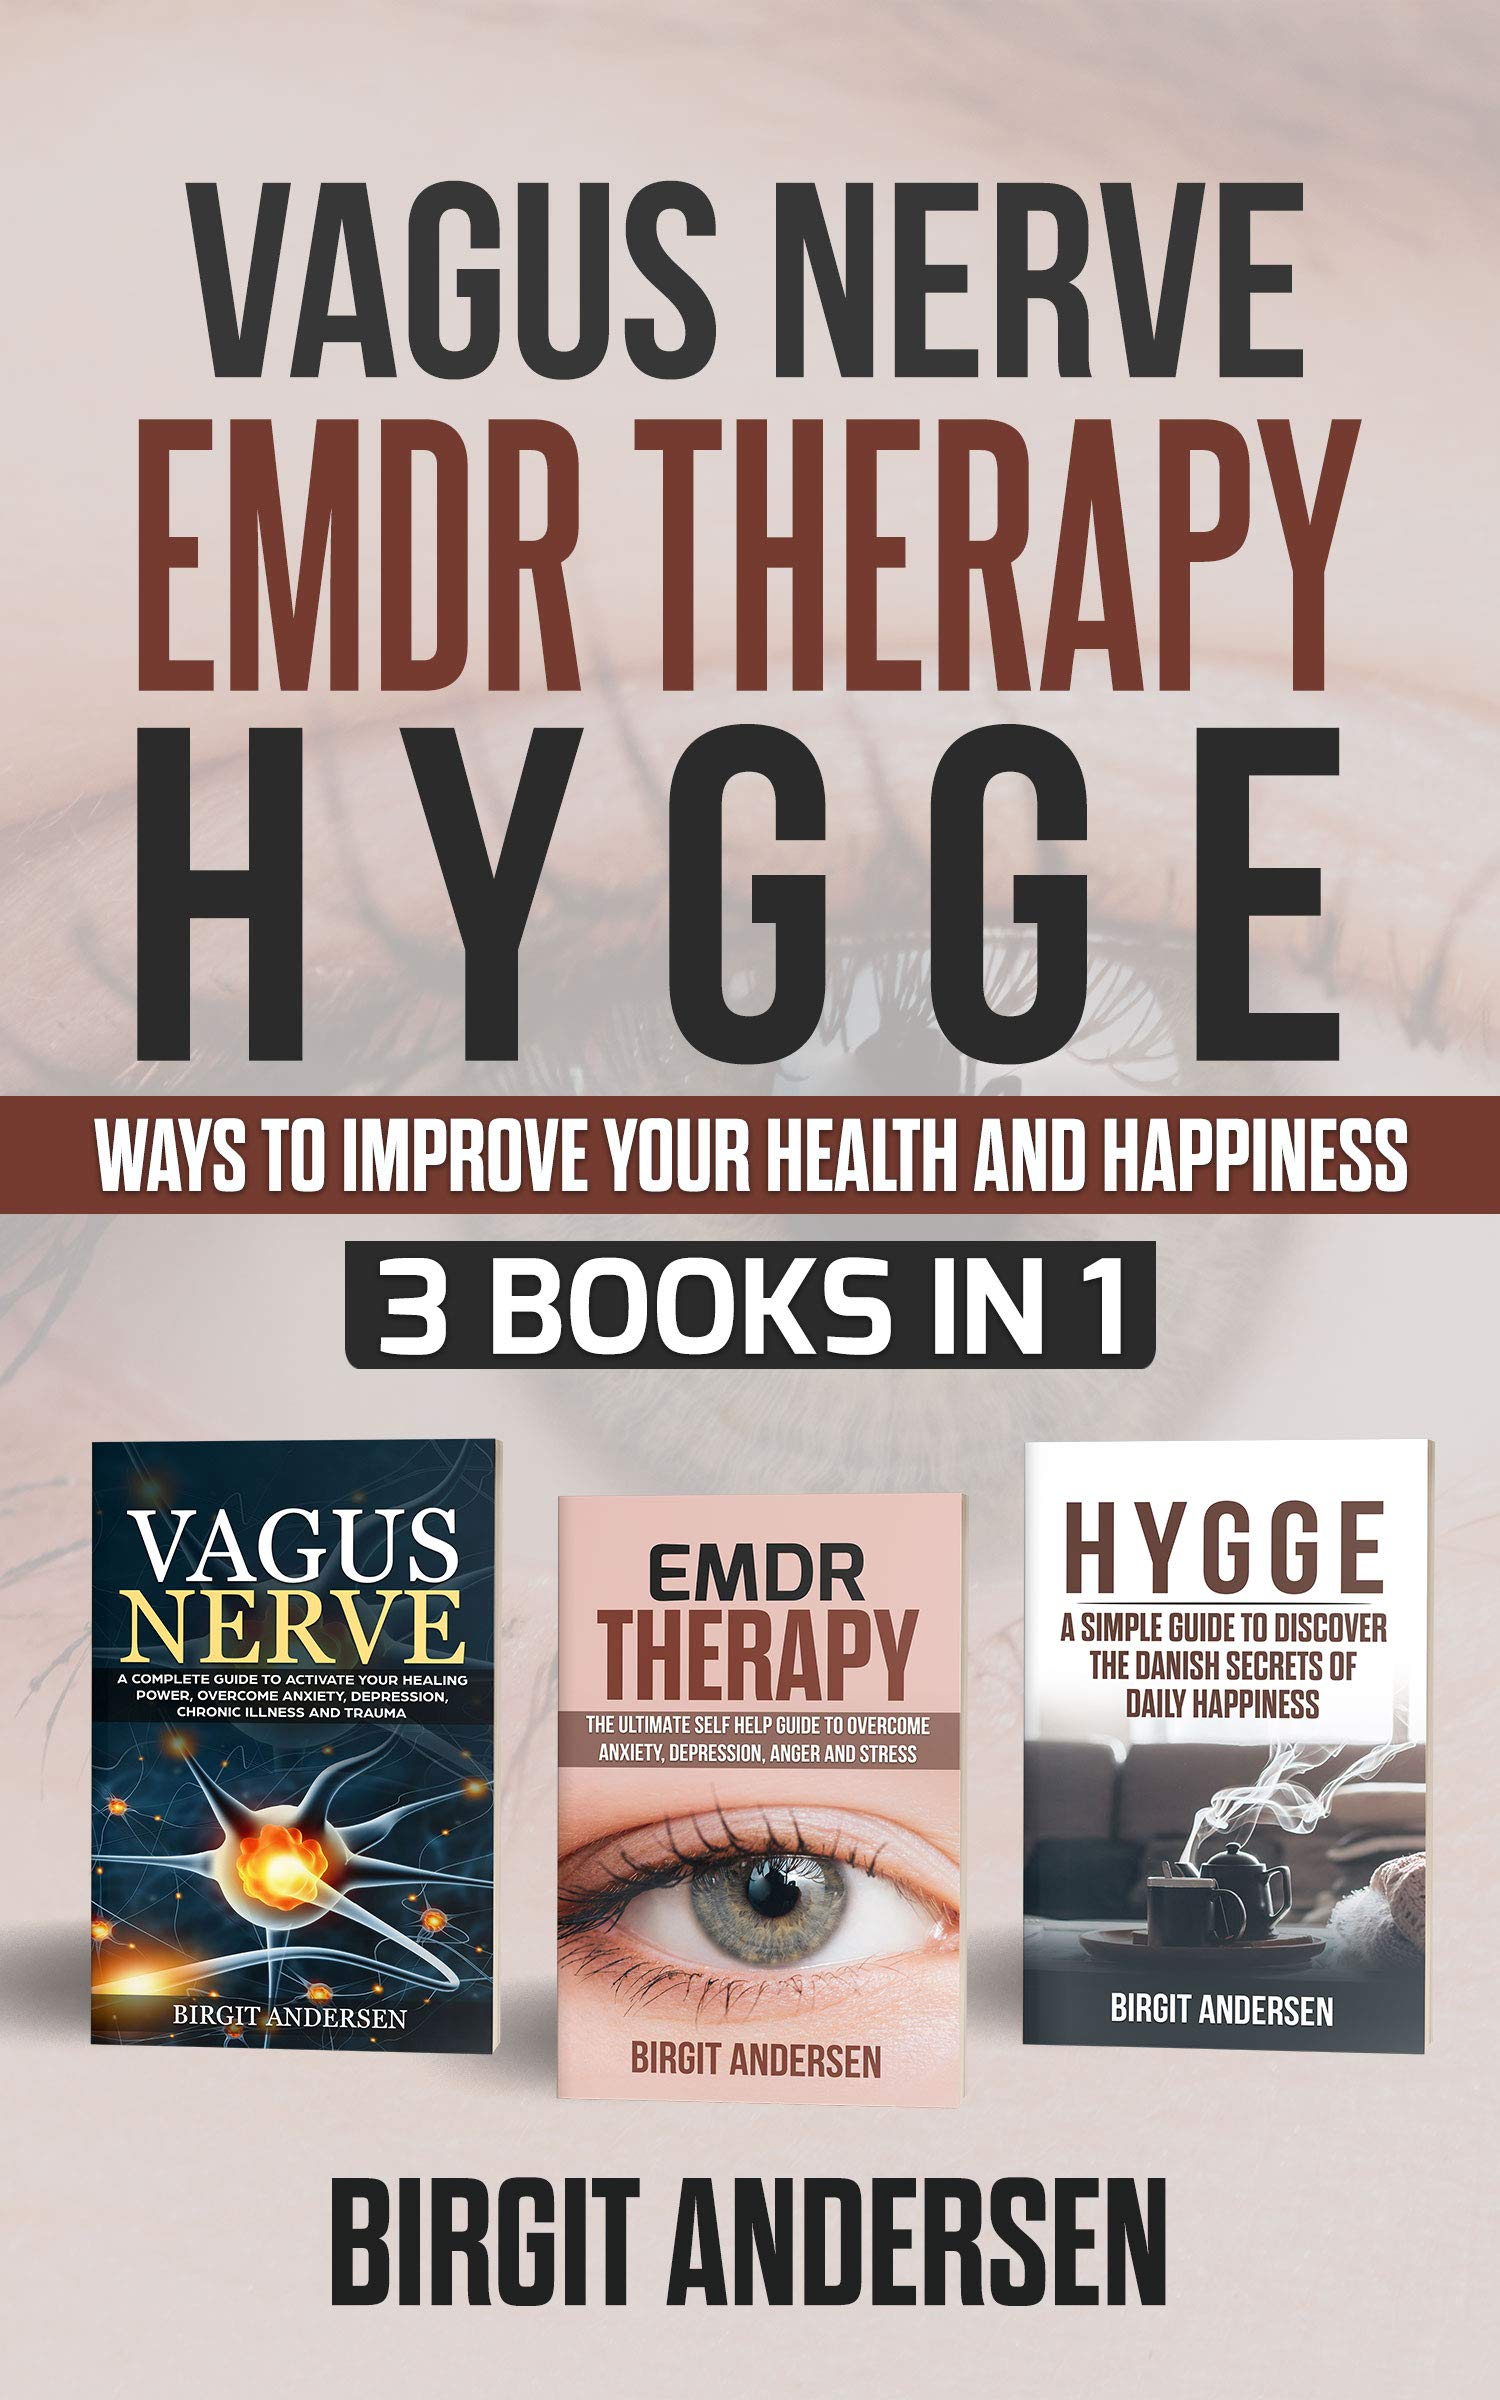 Vagus Nerve, Emdr Therapy, Hygge: Ways To Improve Your Health And Happiness. 3 Books In 1